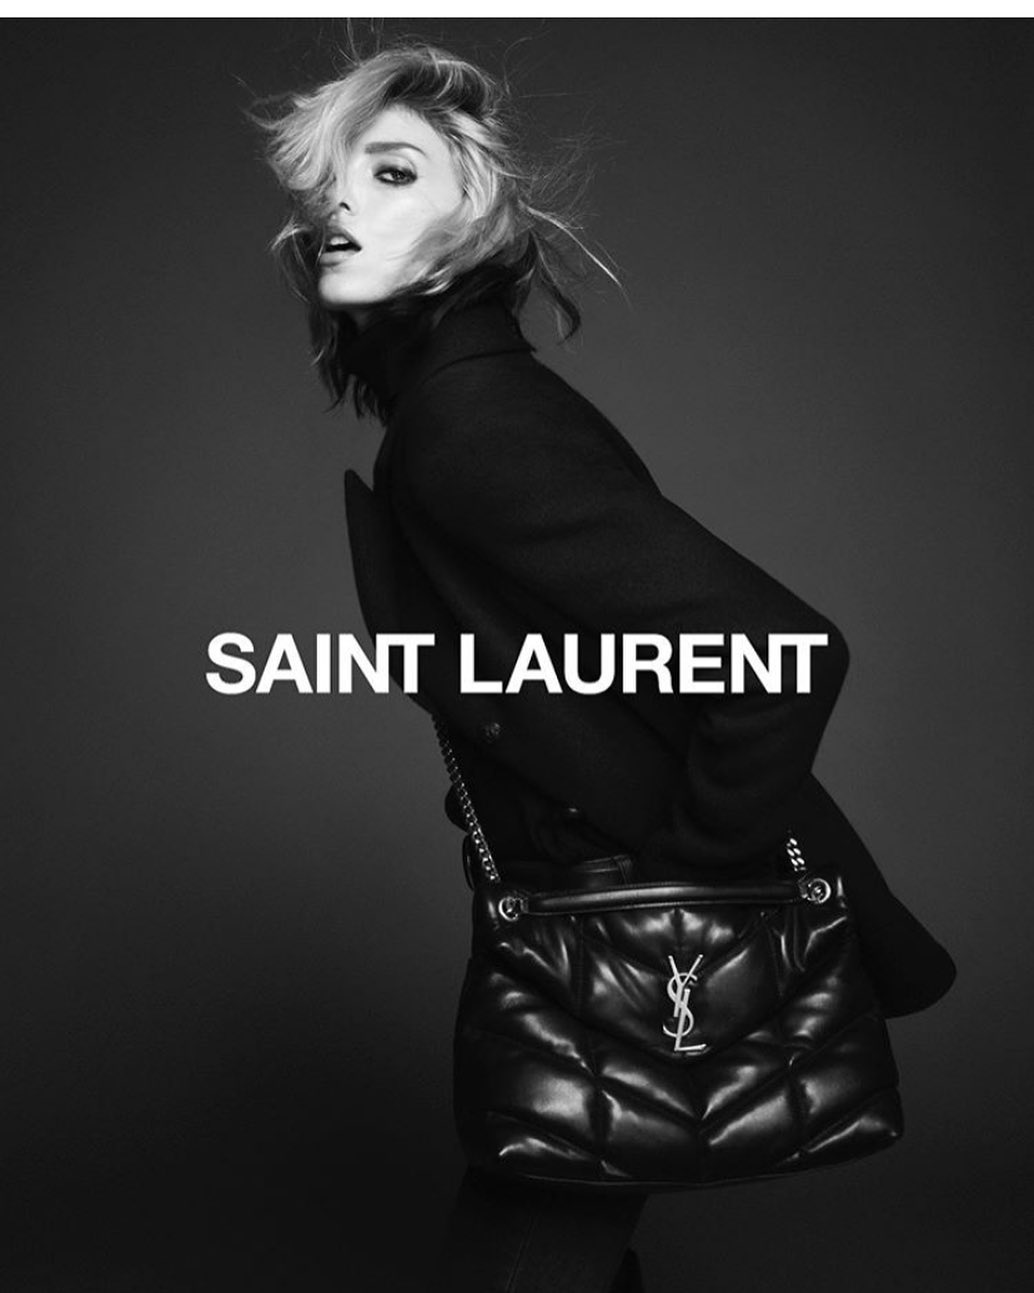 saint_laurent_fall_2019_campaign3.jpg